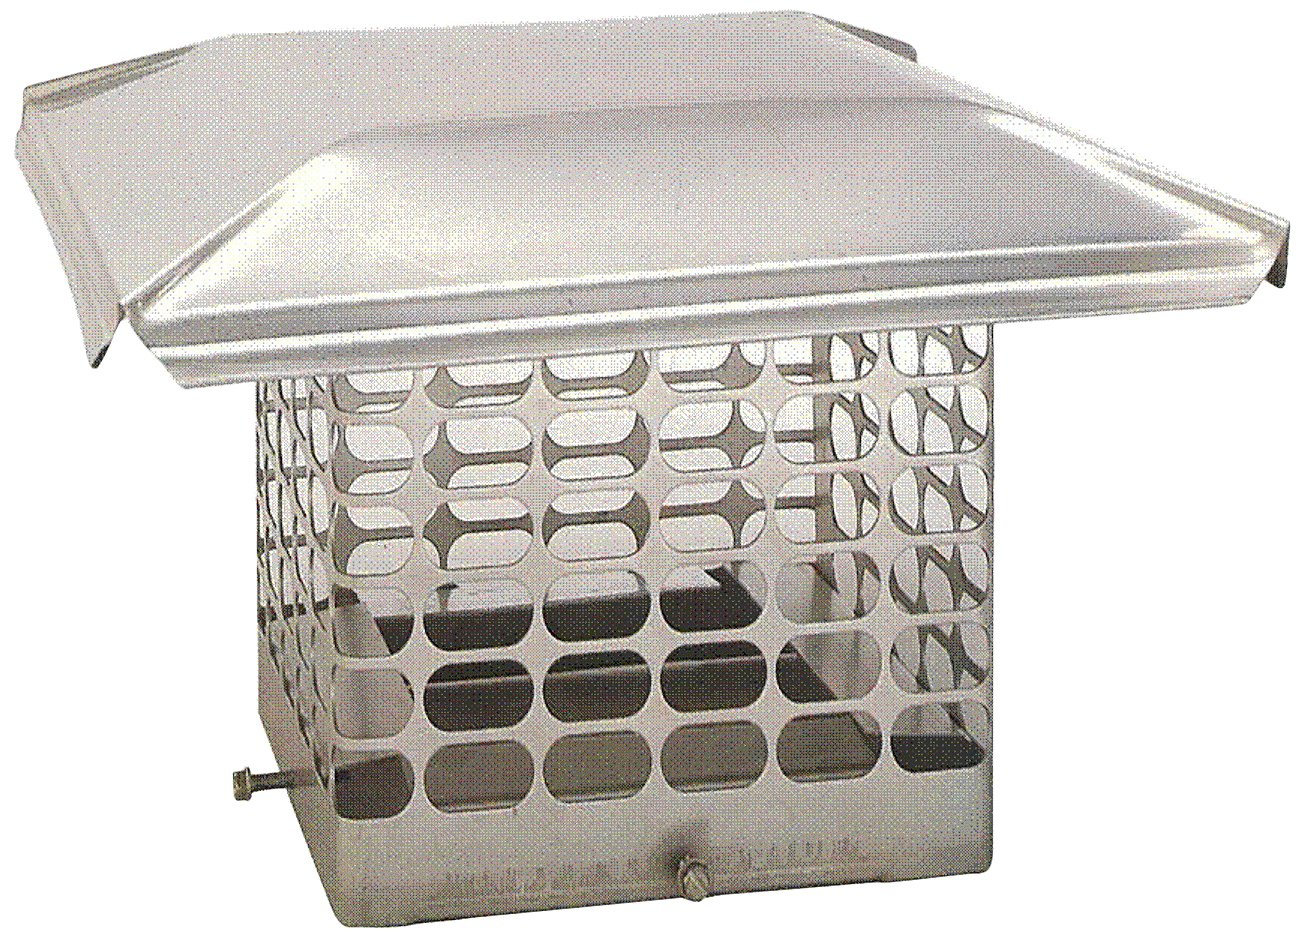 The Forever Cap CCSS813 8 x 13-Inch Stainless Steel Single Flue Chimney Cap by The Forever Cap